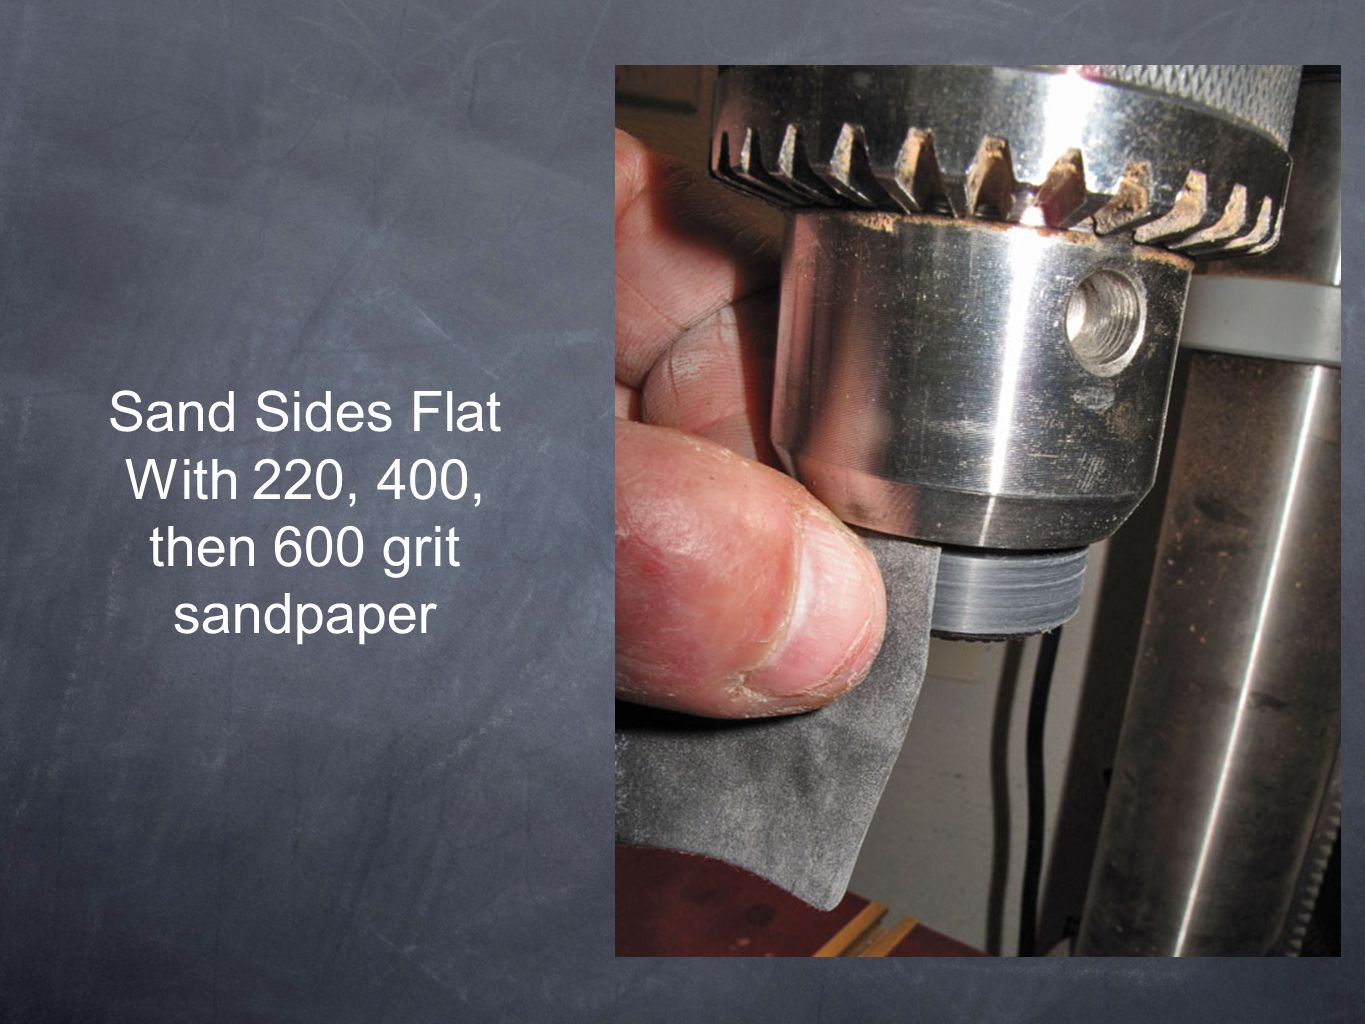 Sand Sides Flat With 220, 400, then 600 grit sandpaper